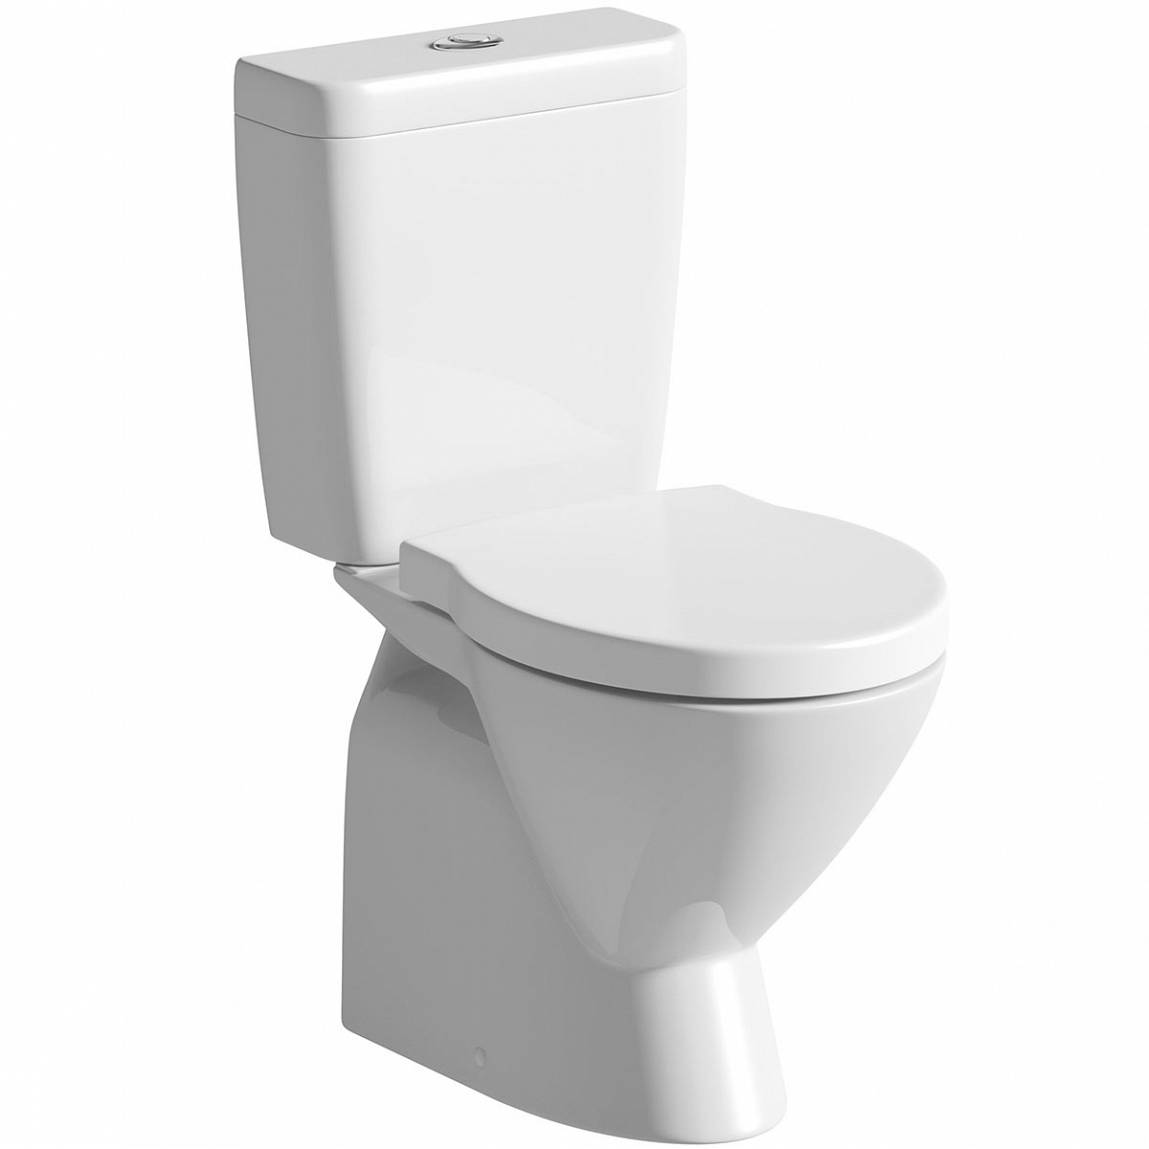 Image of Ancona Close Coupled Toilet Inc Luxury Toilet Seat